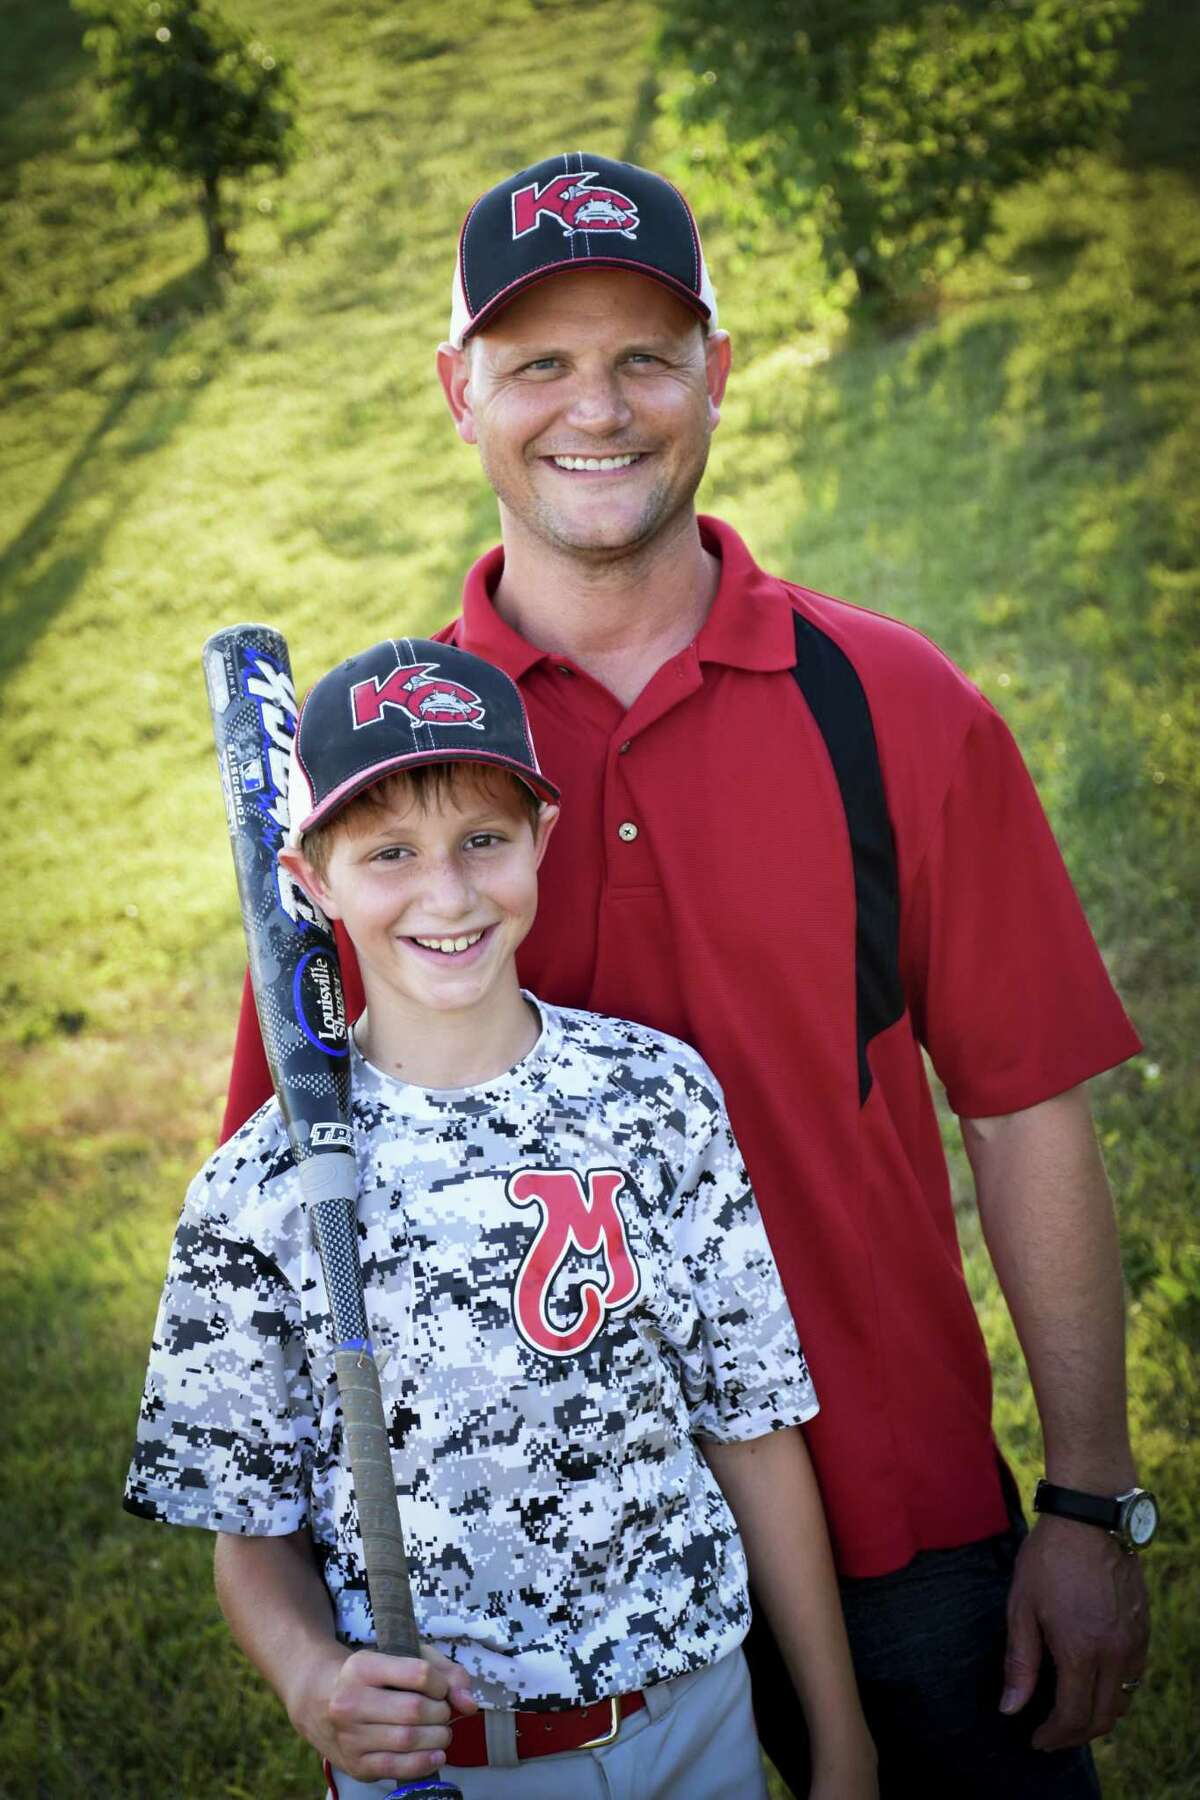 Caleb Scwhab, 10, was killed on the water slide on Aug. 7, 2016. His father, Republican state representative Scott Schwab, is pictured on the right.